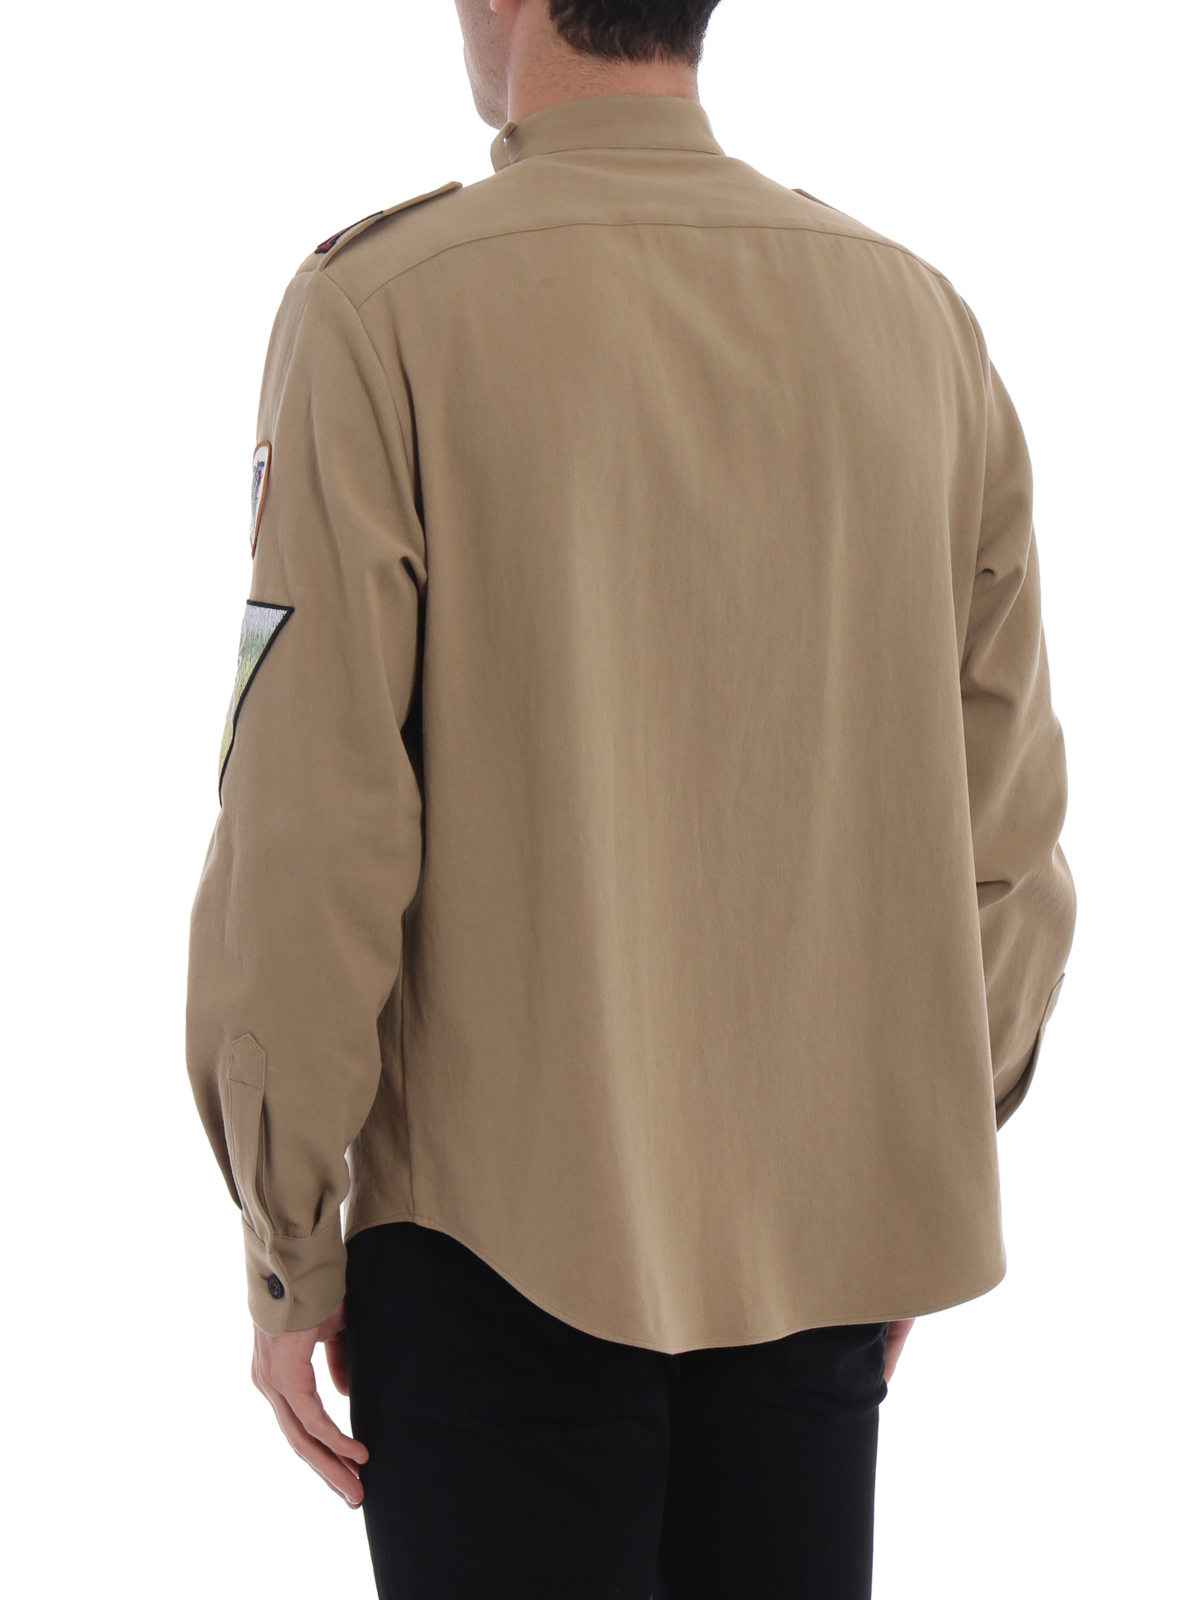 Boy scout store online coupon